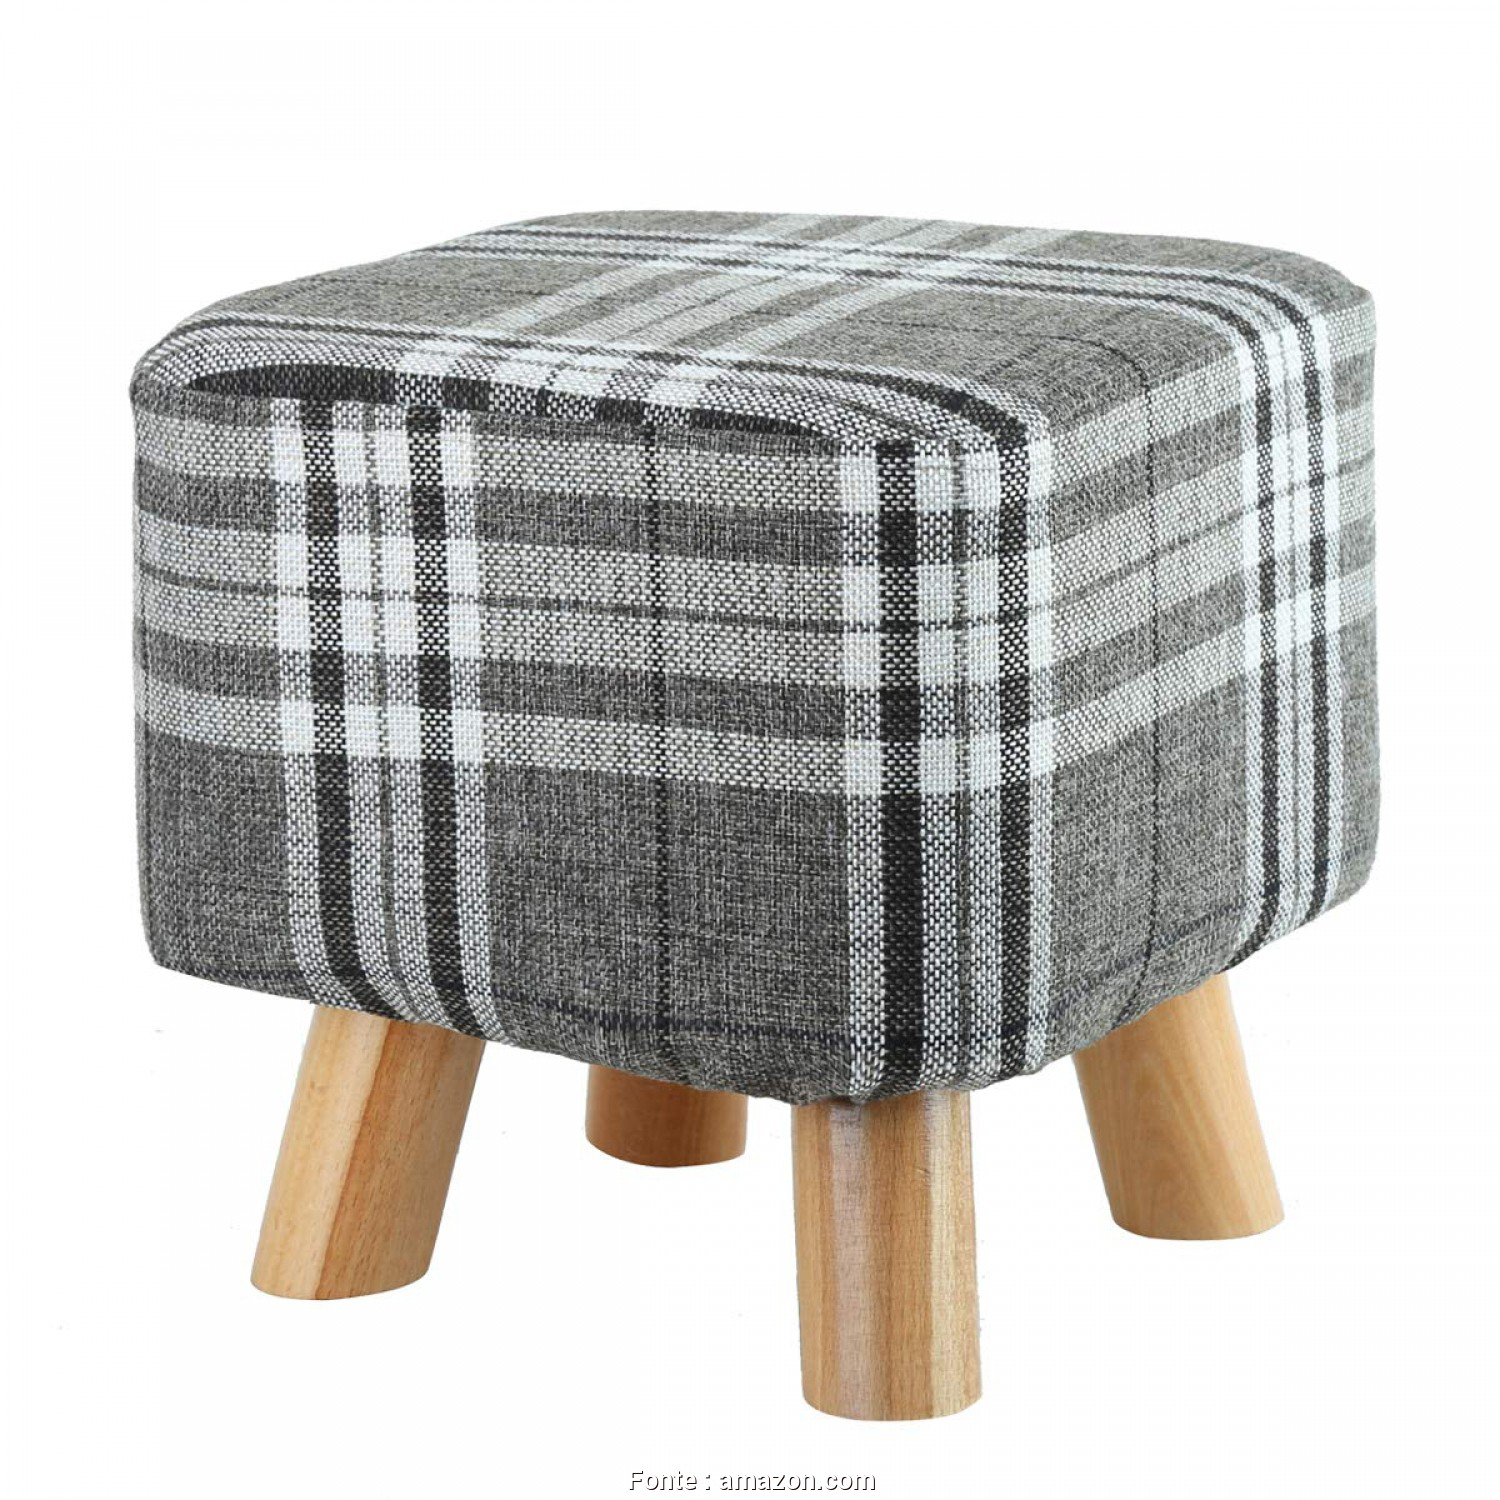 Plaid Divano Amazon, Migliore Amazon.Com: Eshow Padded Footstools Ottoman Foot Rest With Wooden Legs Linen Fabric Cover: Kitchen & Dining